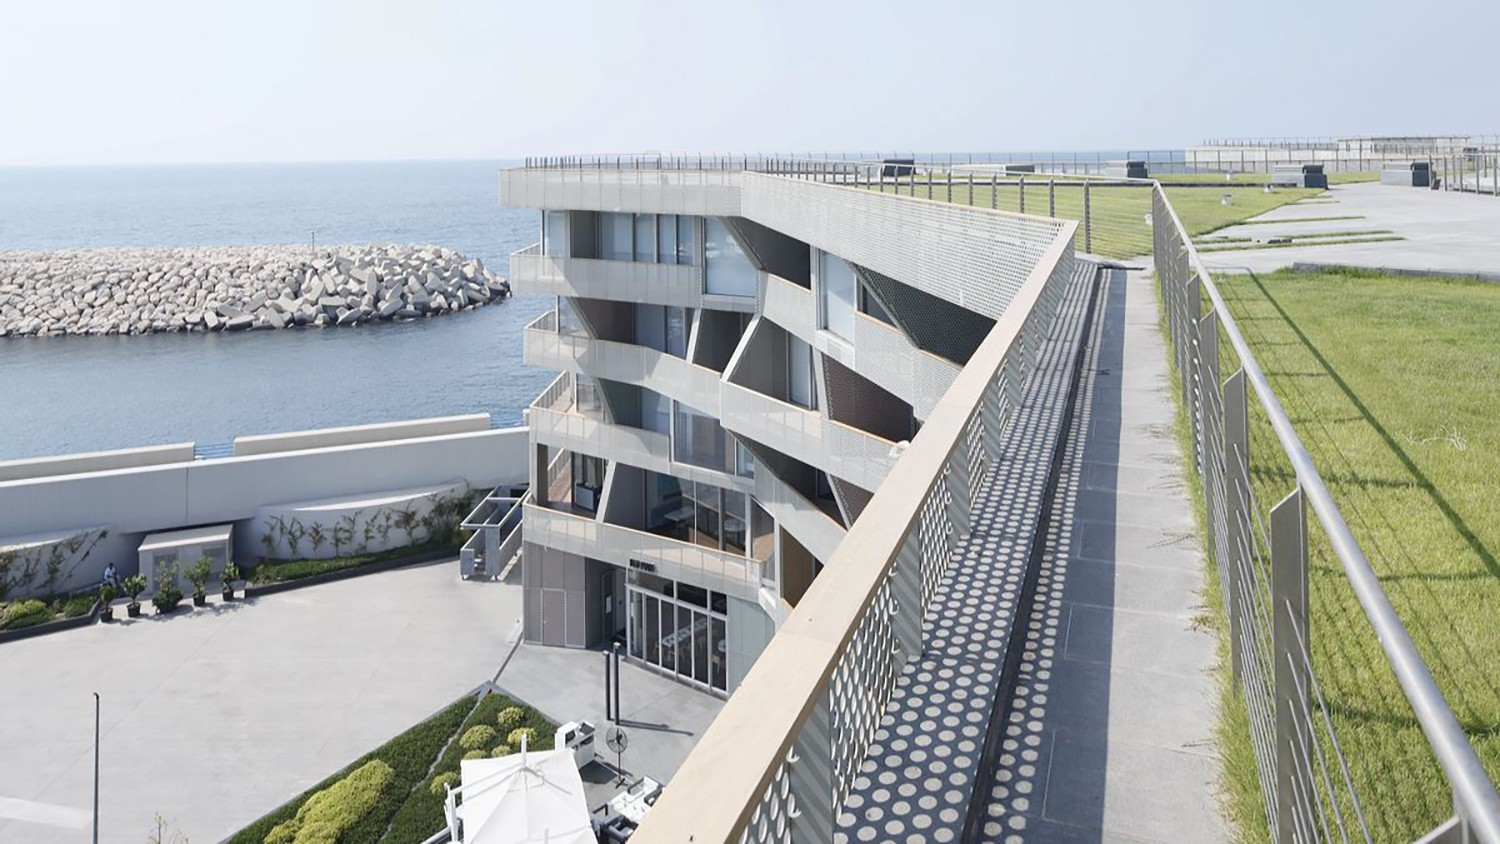 https://stevenholl.sfo2.digitaloceanspaces.com/uploads/projects/project-images/IwanBaan_Beirut_marina_bay_14-08_sha_4149_WH.jpg